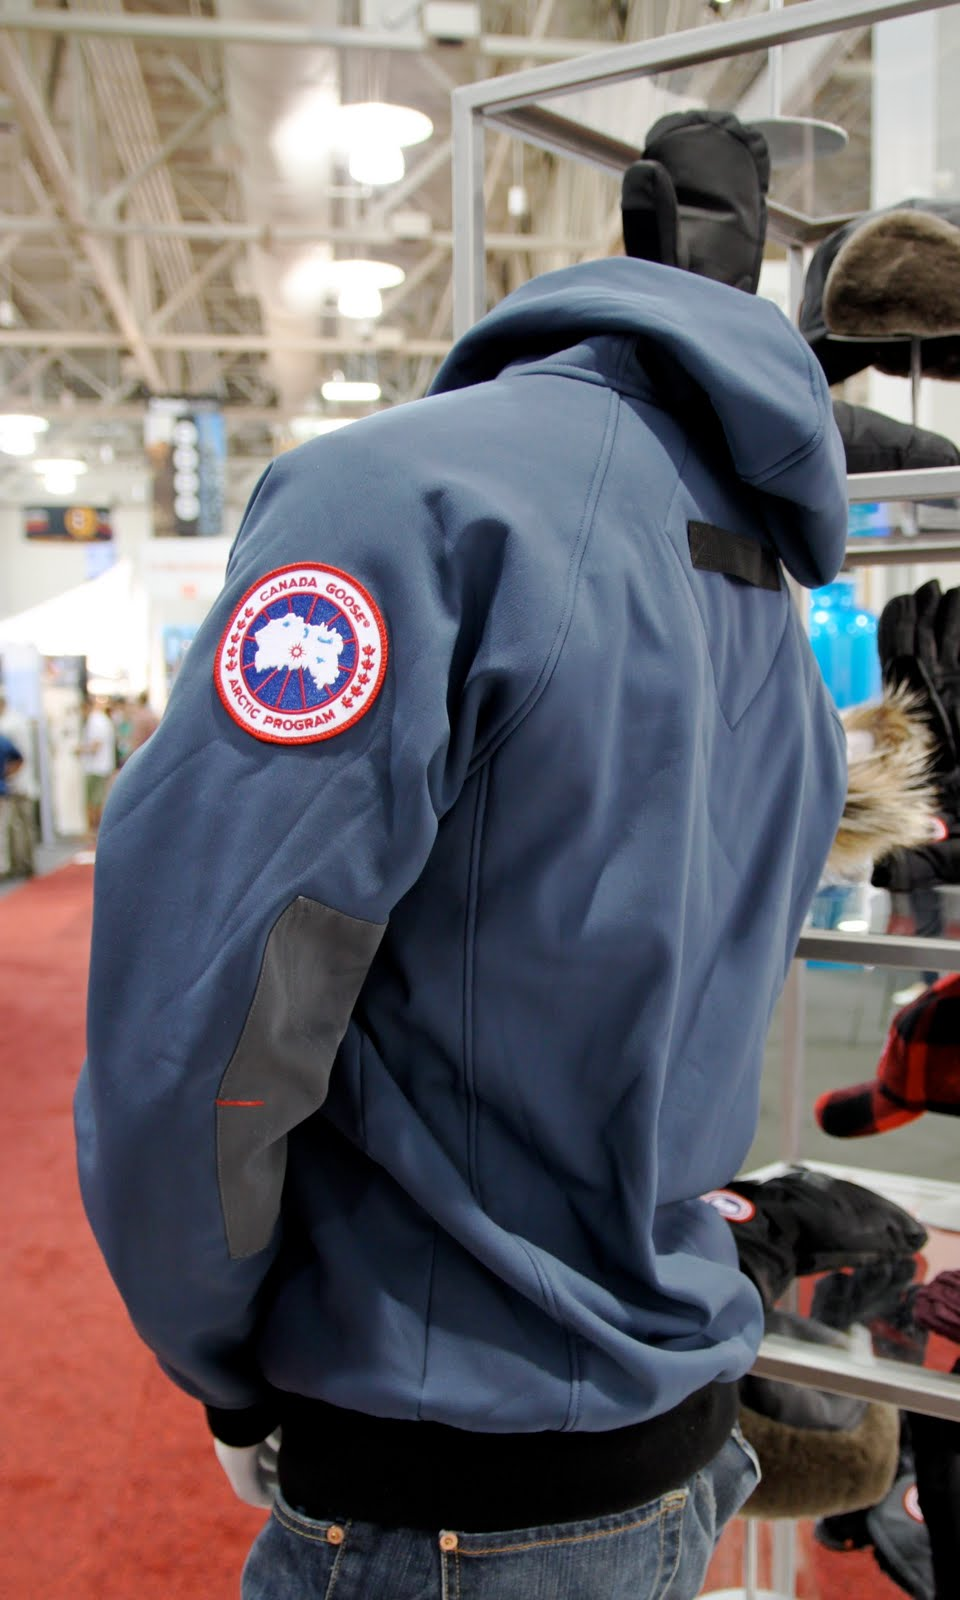 Canada Goose trillium parka sale cheap - LYRA MAG.: CANADA GOOSE LUXURY OUTERWEAR Men's & Women's 2010/2011